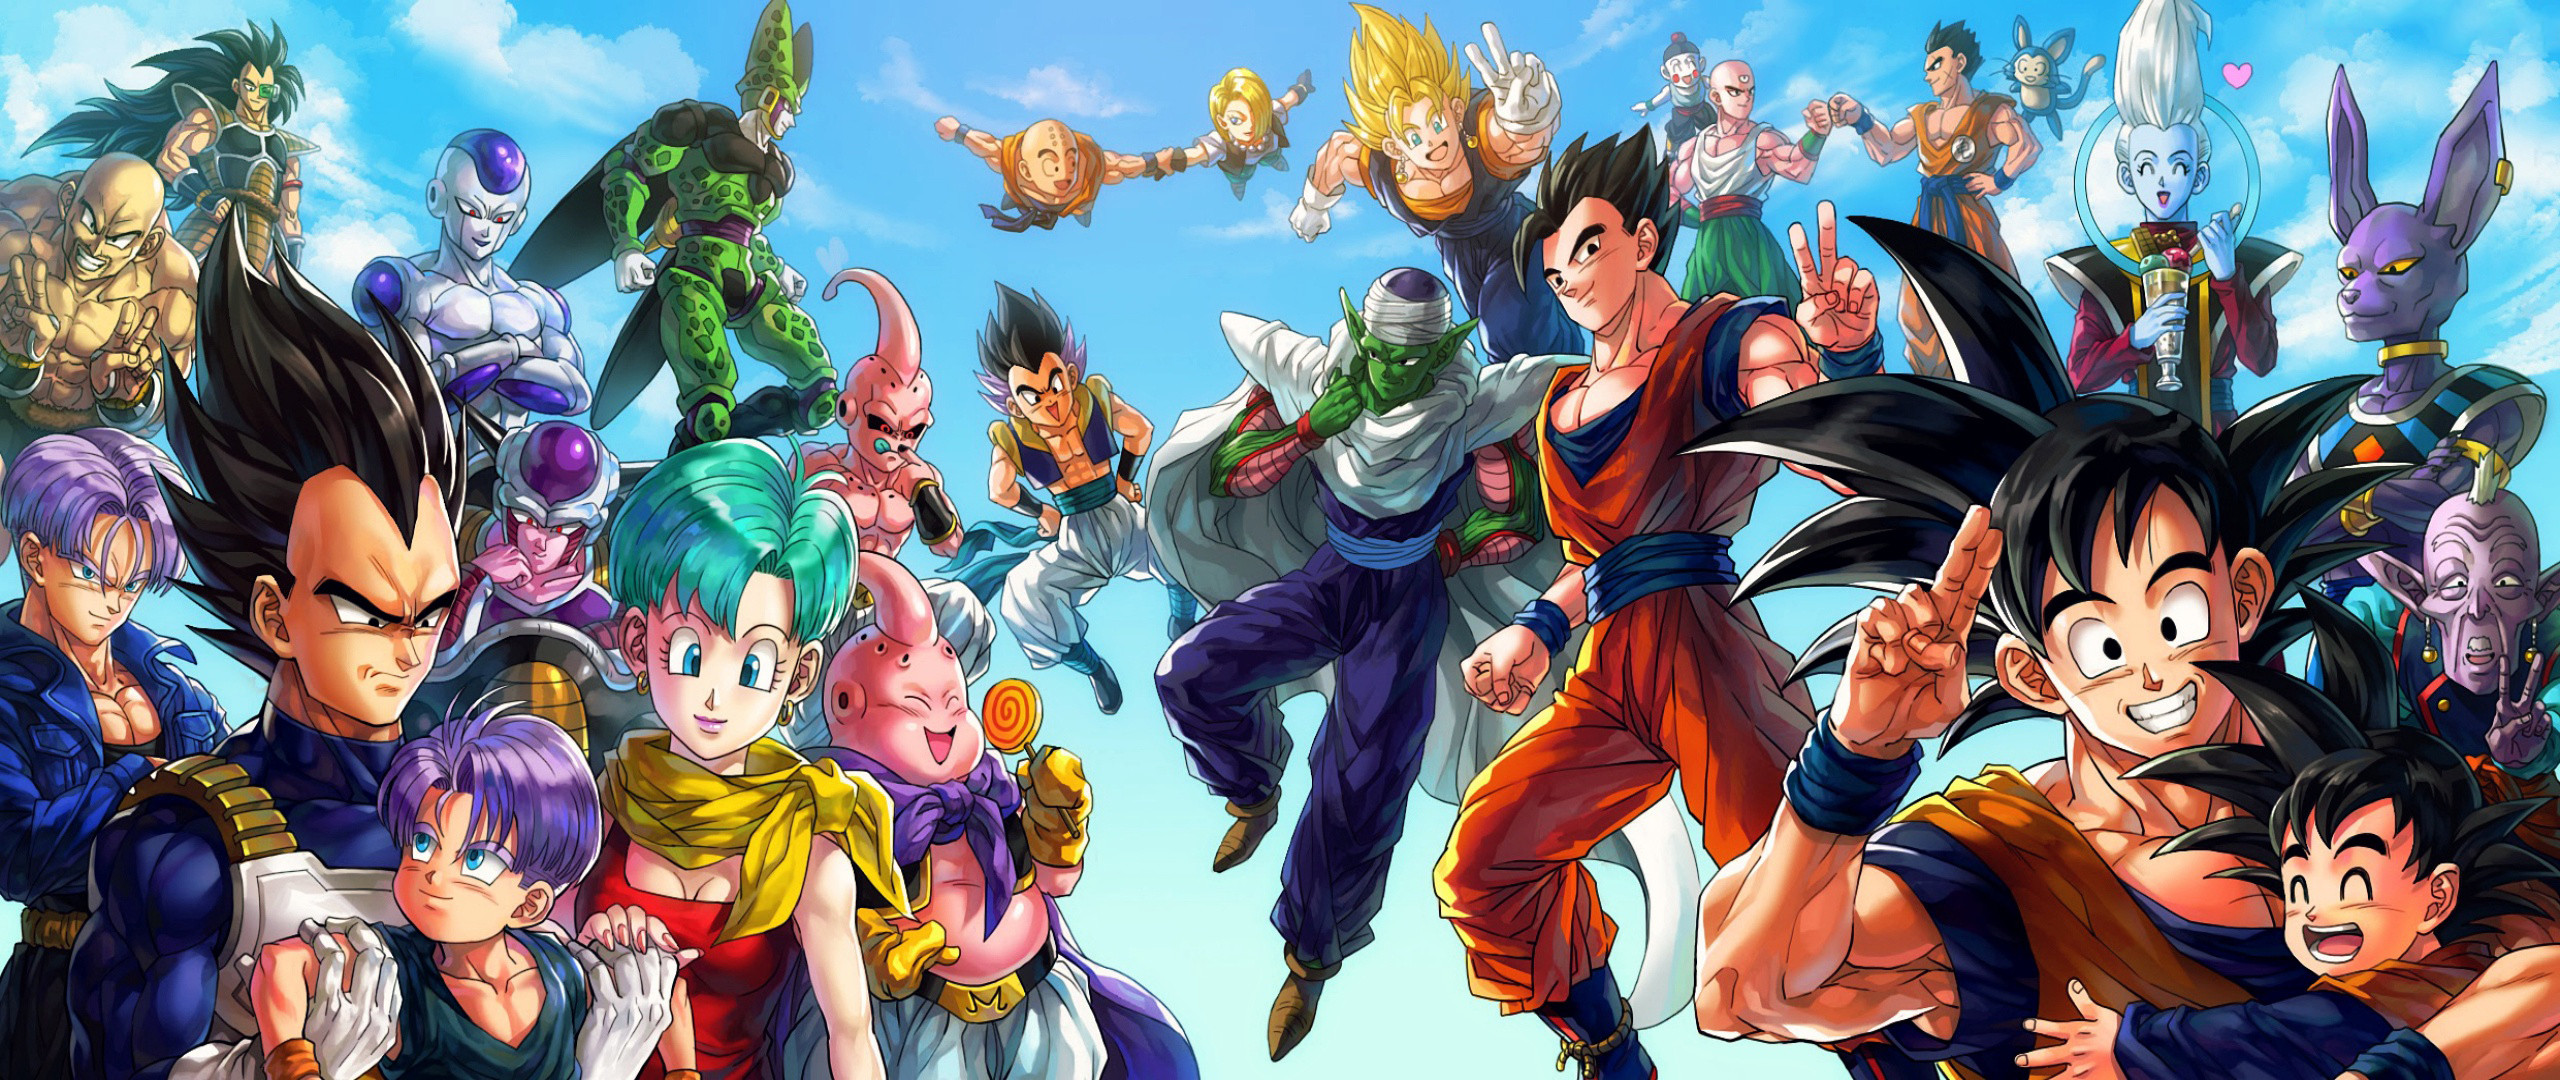 Dragon Ball Z Gohan Wallpaper